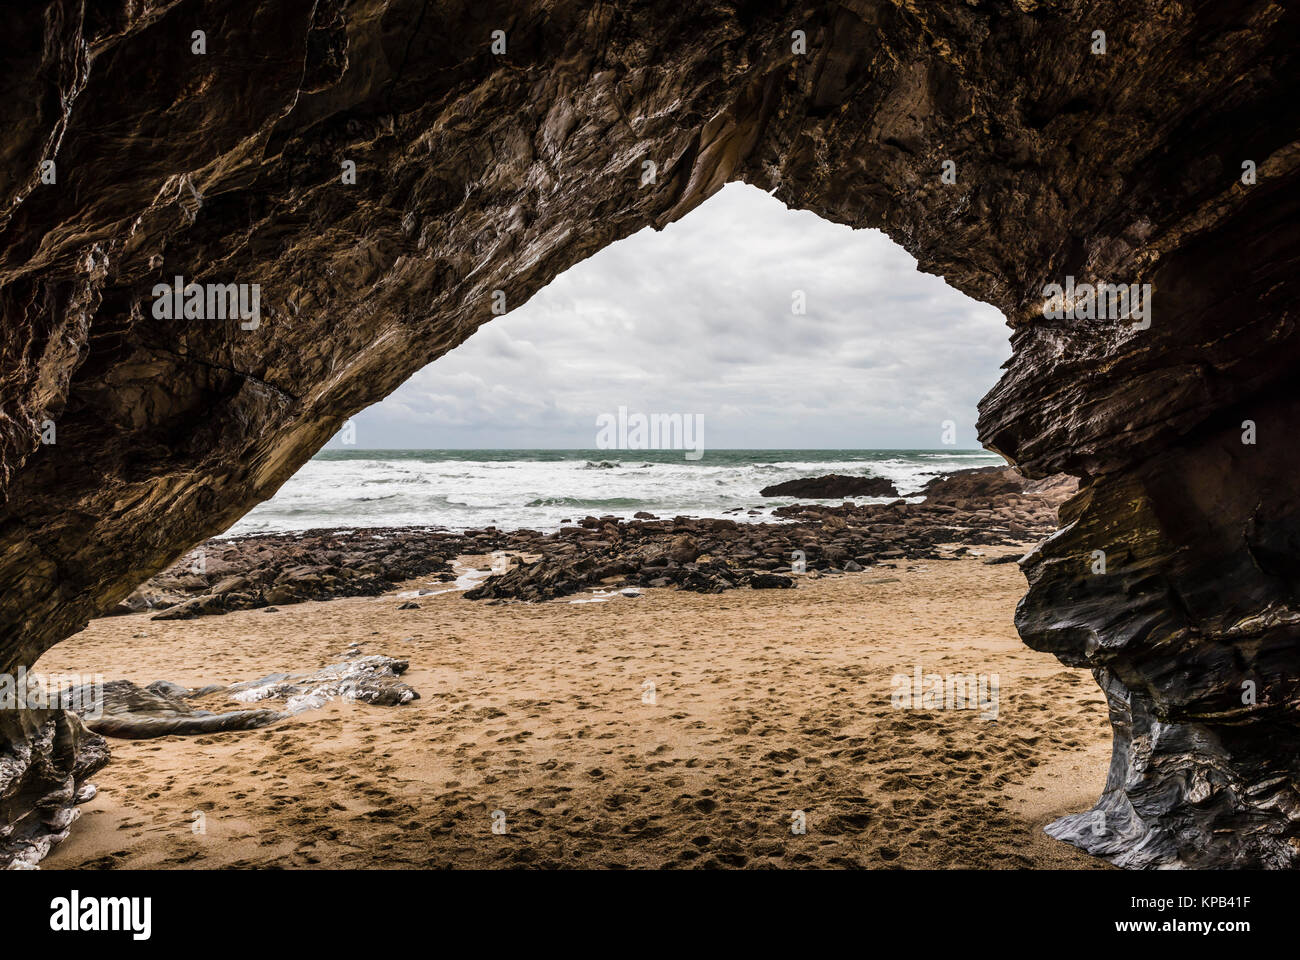 Looking through rocks at Fistral Beach, Cornwall, UK - Stock Image